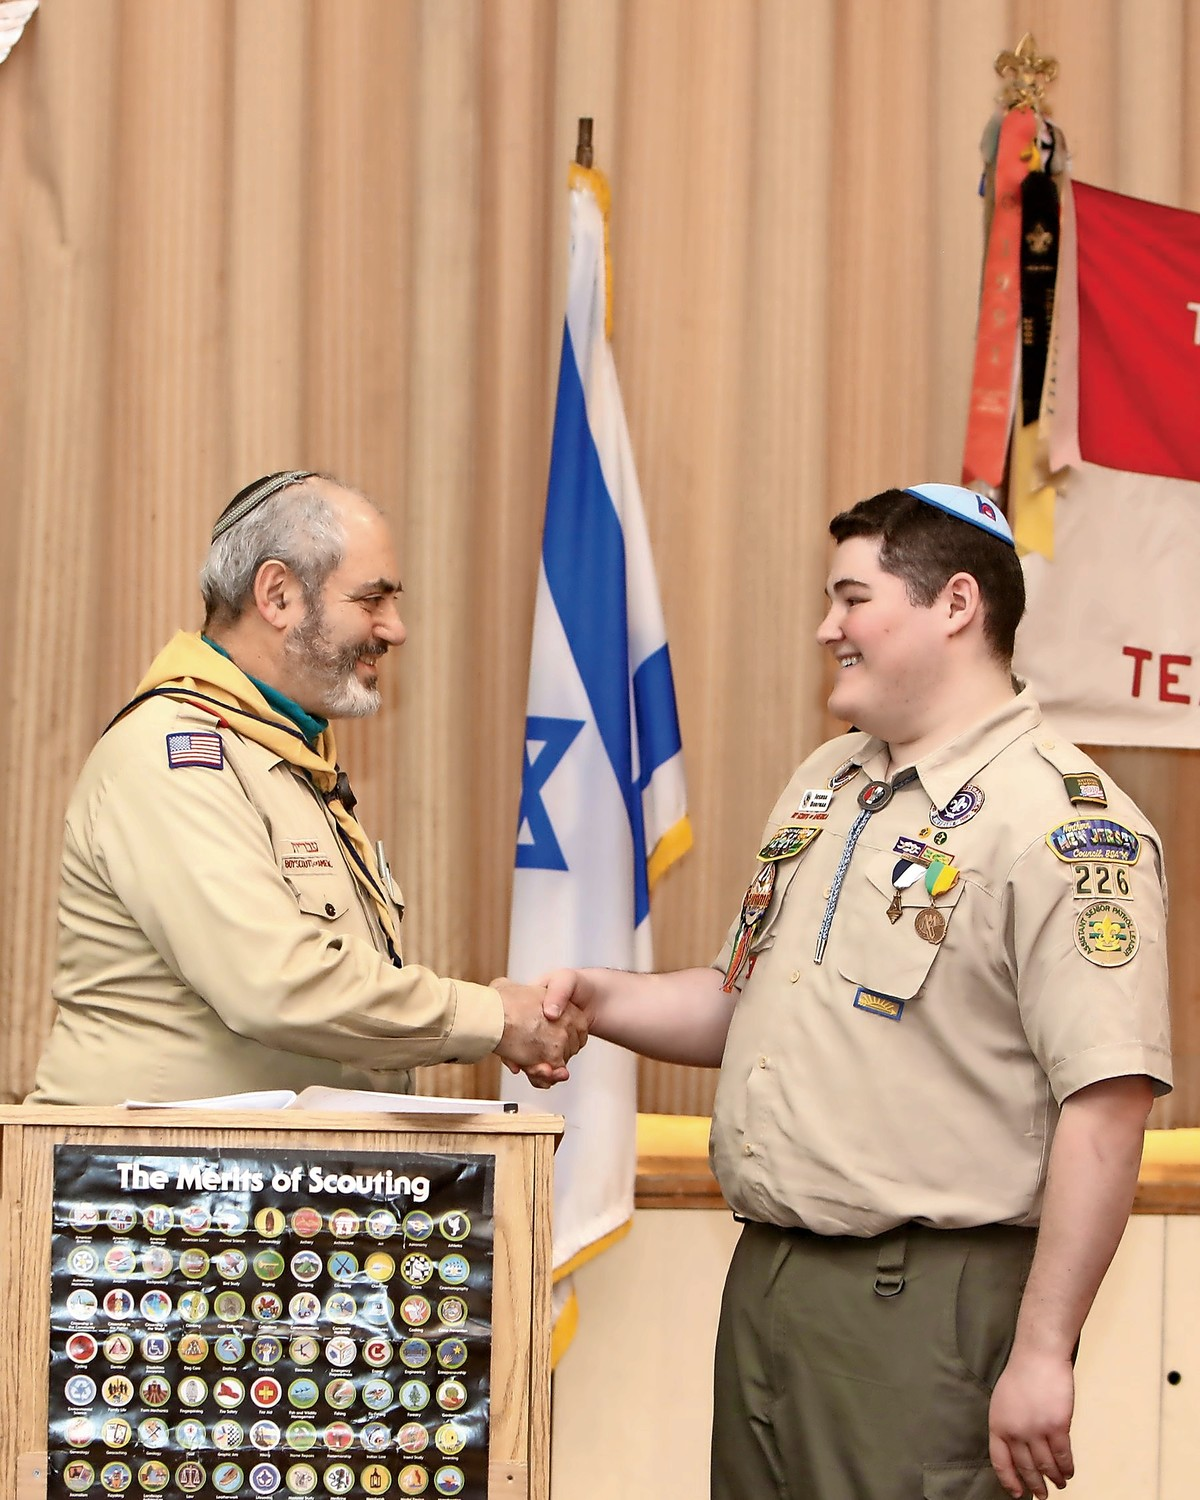 Joshua Dorfman, a new eagle scout, shakes the hand of assistant scout master Arvin Levine. Dorfman became an eagle scout on Feb. 25.